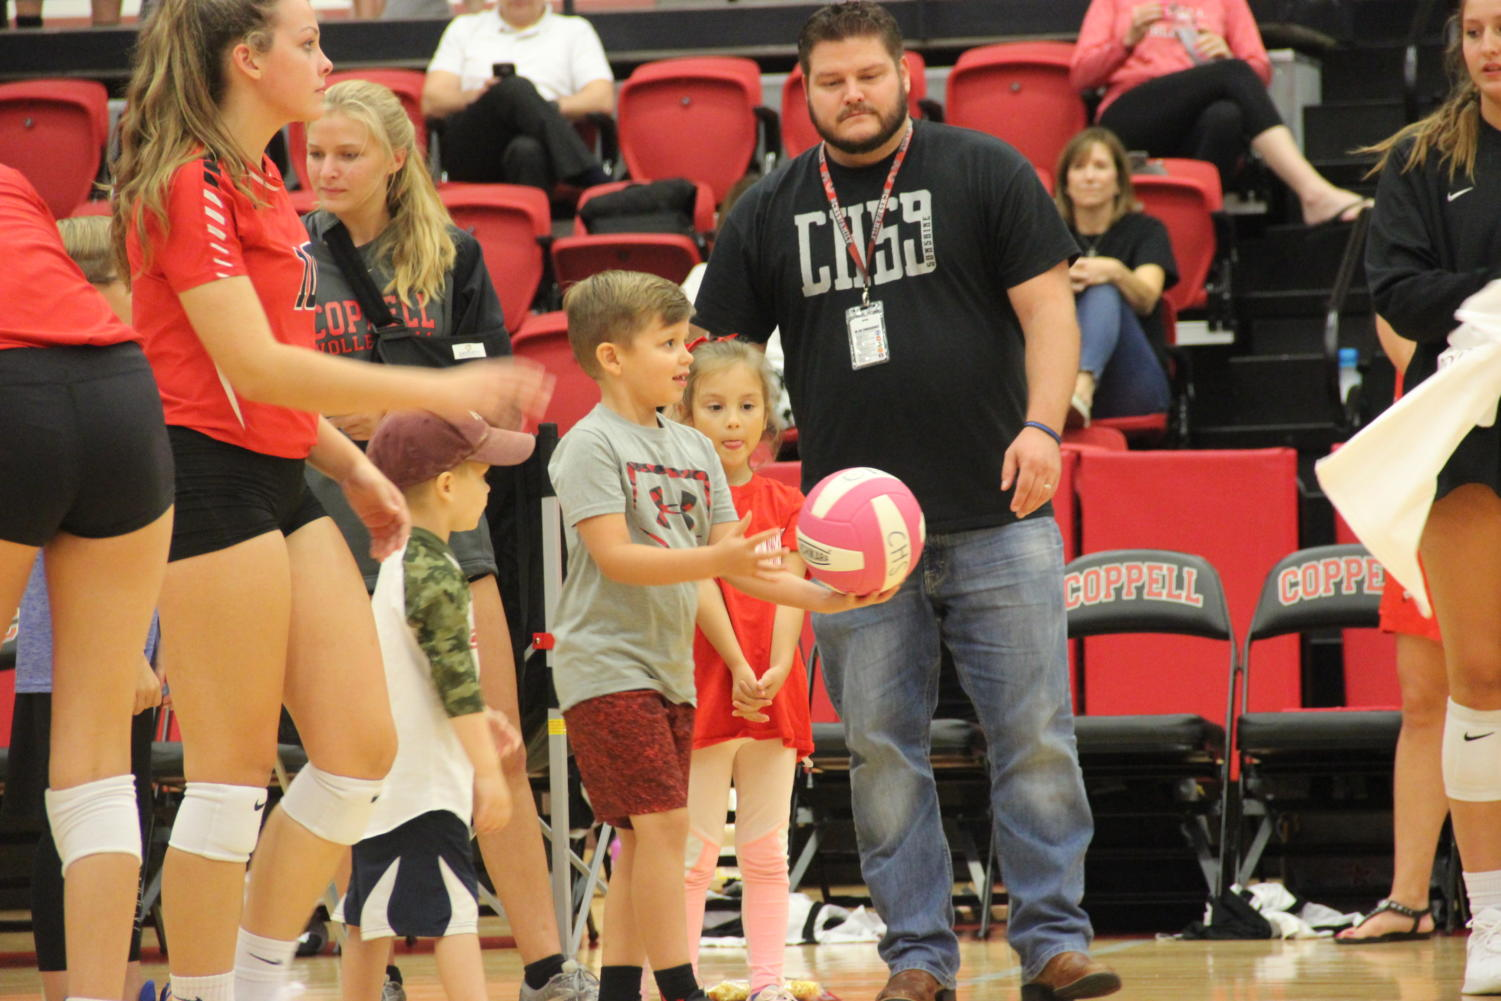 Elementary+school+students+attempt+to+hit+and+win+T-shirts+in+the+CHS+Arena.+The+Coppell+volleyball+team+hosted+Elementary+Night+on+Tuesday+before+the+varsity+match+against+Arlington+Martin.